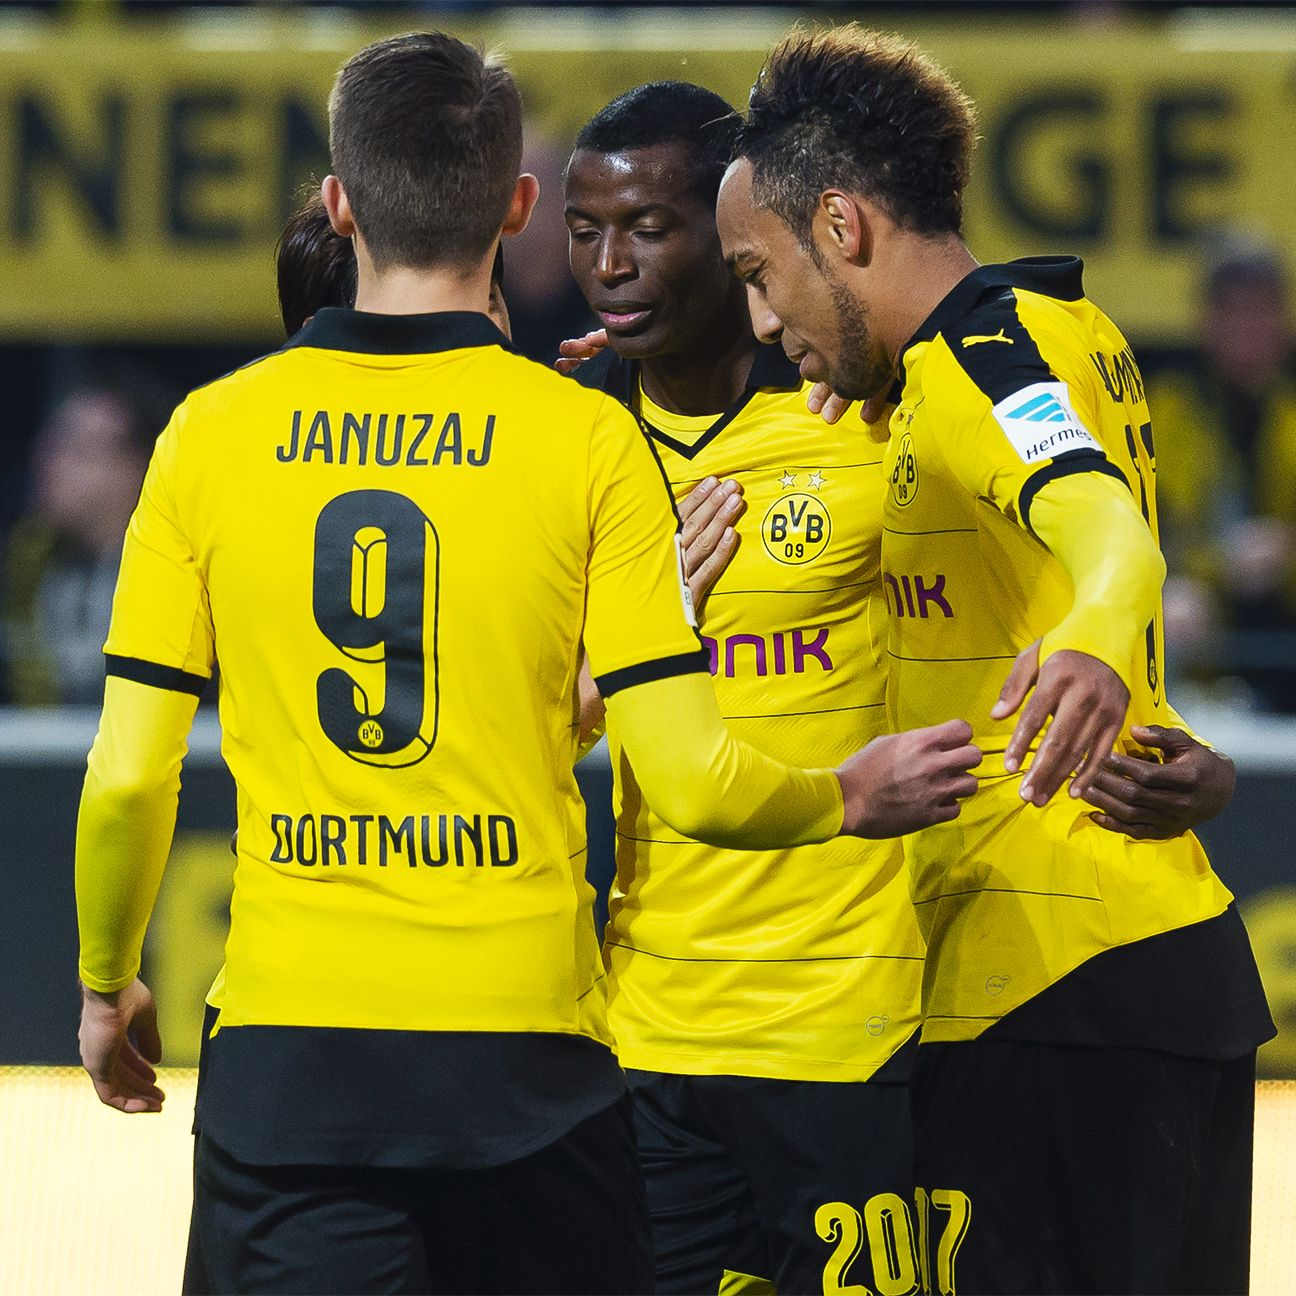 Borussia Dortmund's finely tuned attack will look to pour in more goals against Cologne.